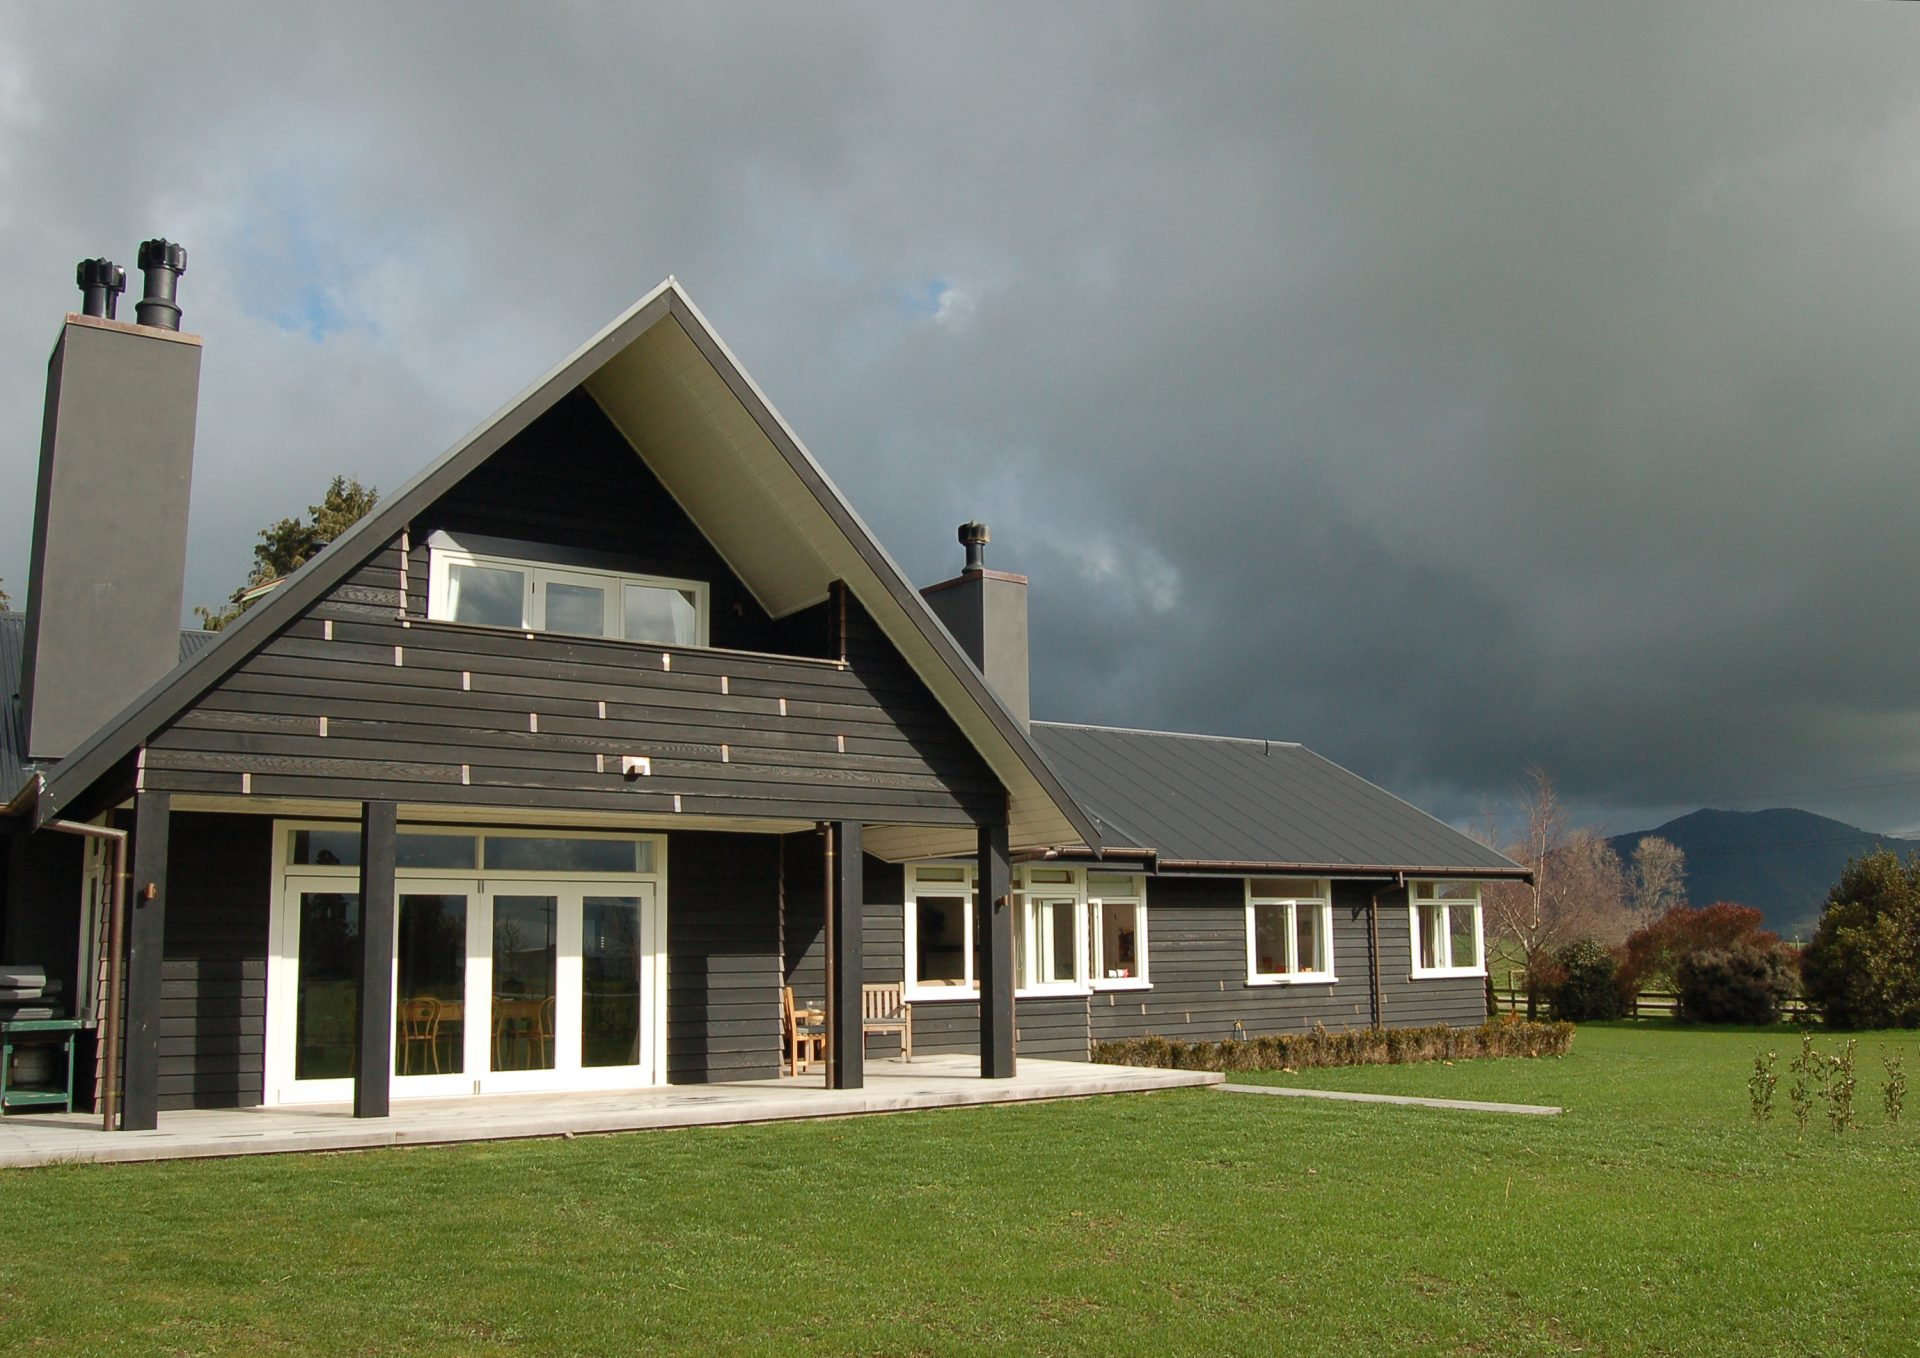 Rural House Alteration, Chibnall Swann Team Architecture, Exterior View1 of 4